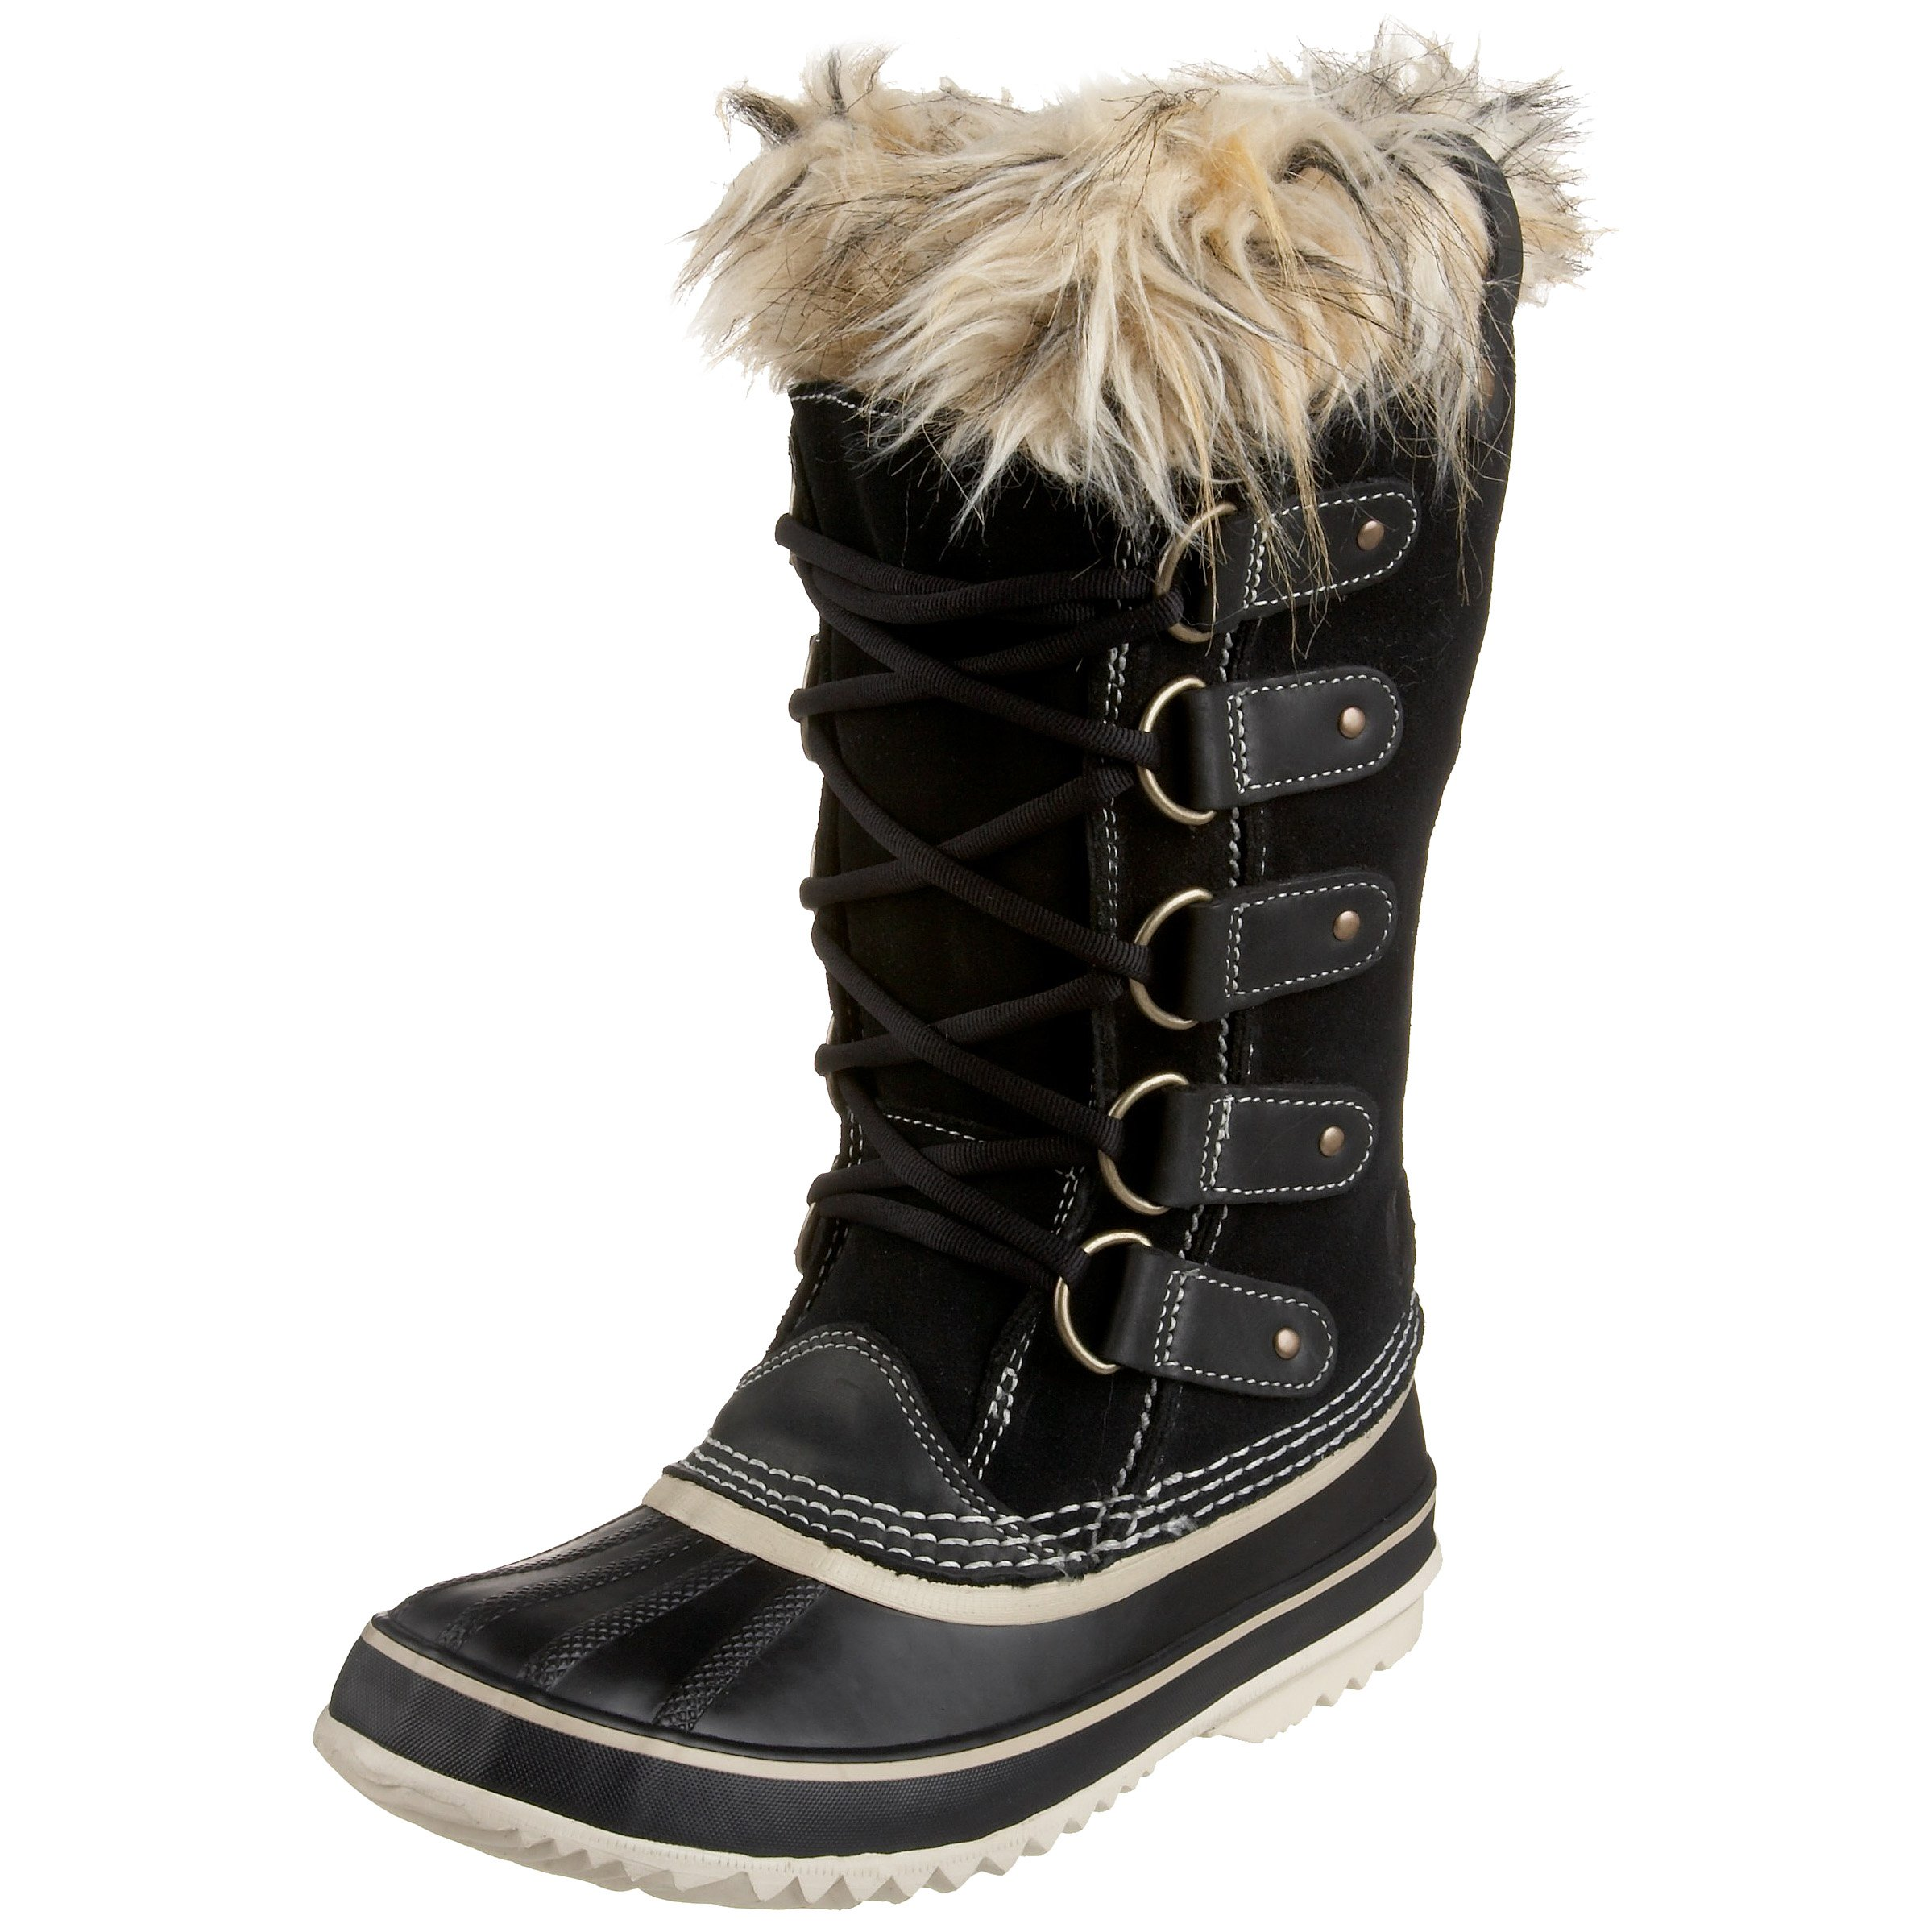 Sorel Women's Joan Of Arctic NL1540 Boot,Black,7 M by Sorel